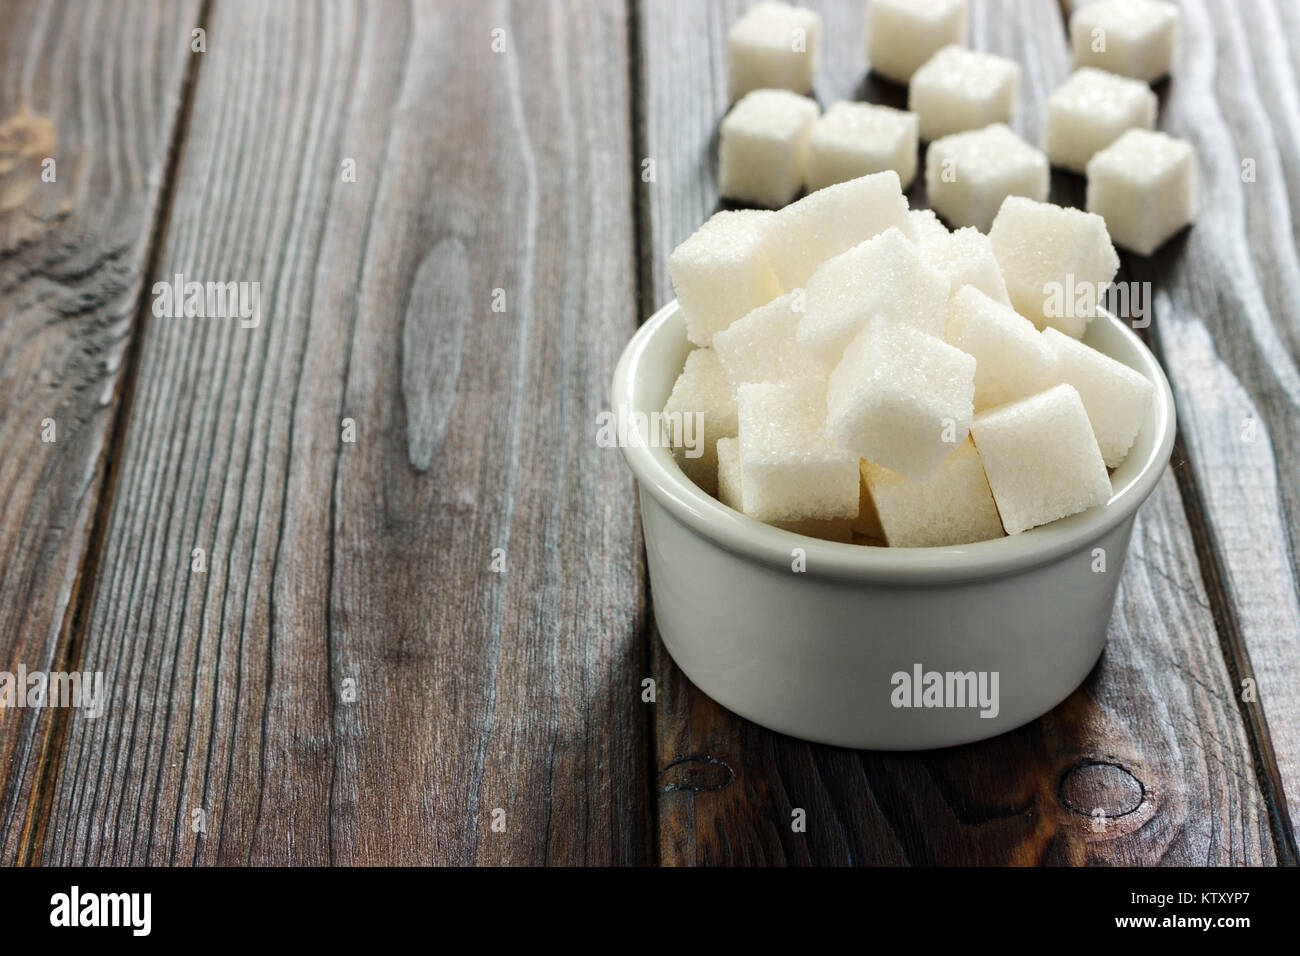 White sugar in bowl on wooden background. Selective focus, horizontal. A few sugar cubes are near the full glass - Stock Image